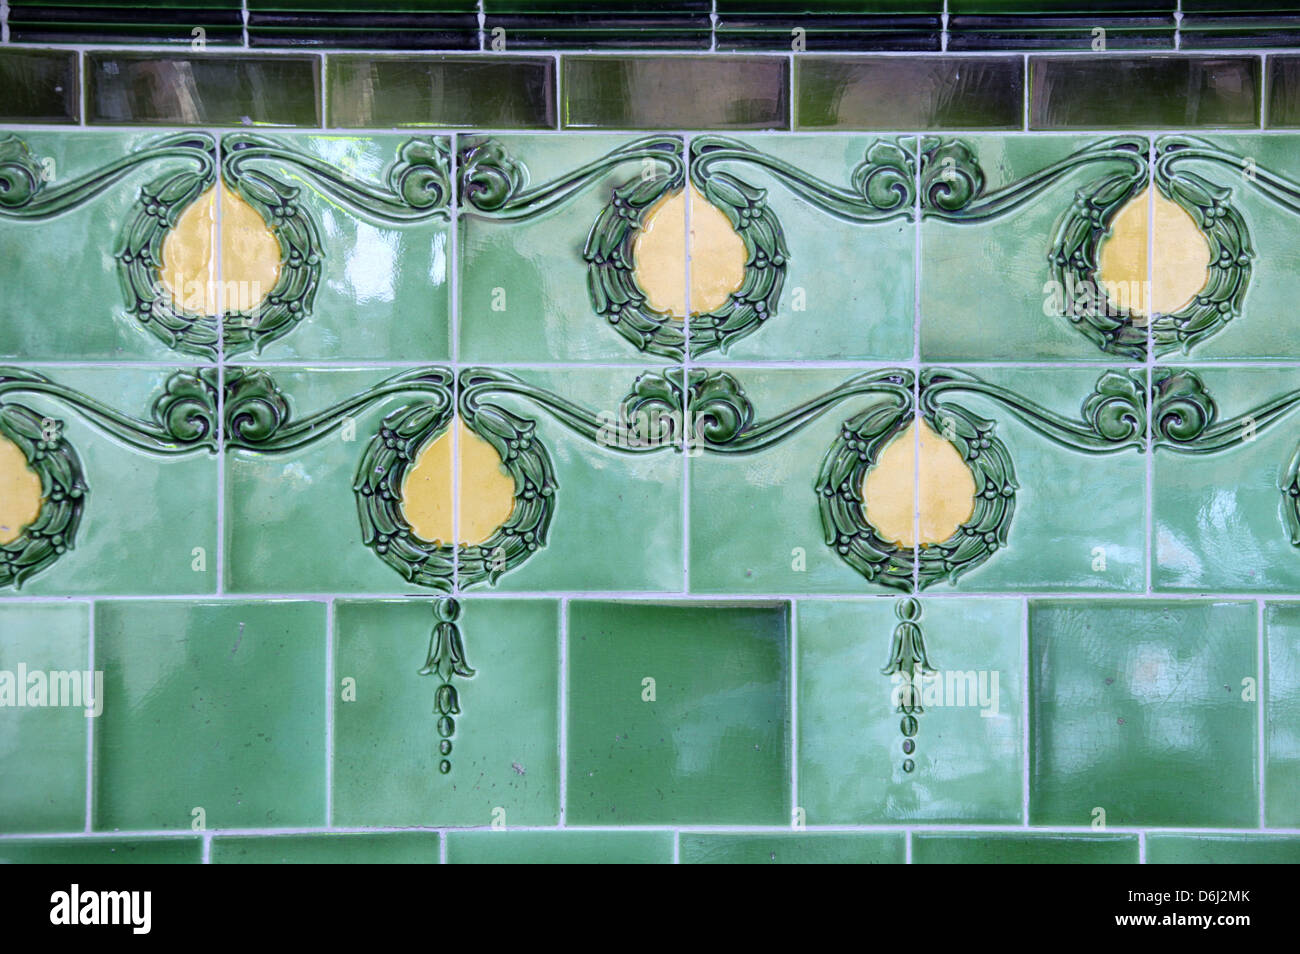 Old Pub Wall Tiles Stock Photos & Old Pub Wall Tiles Stock Images ...